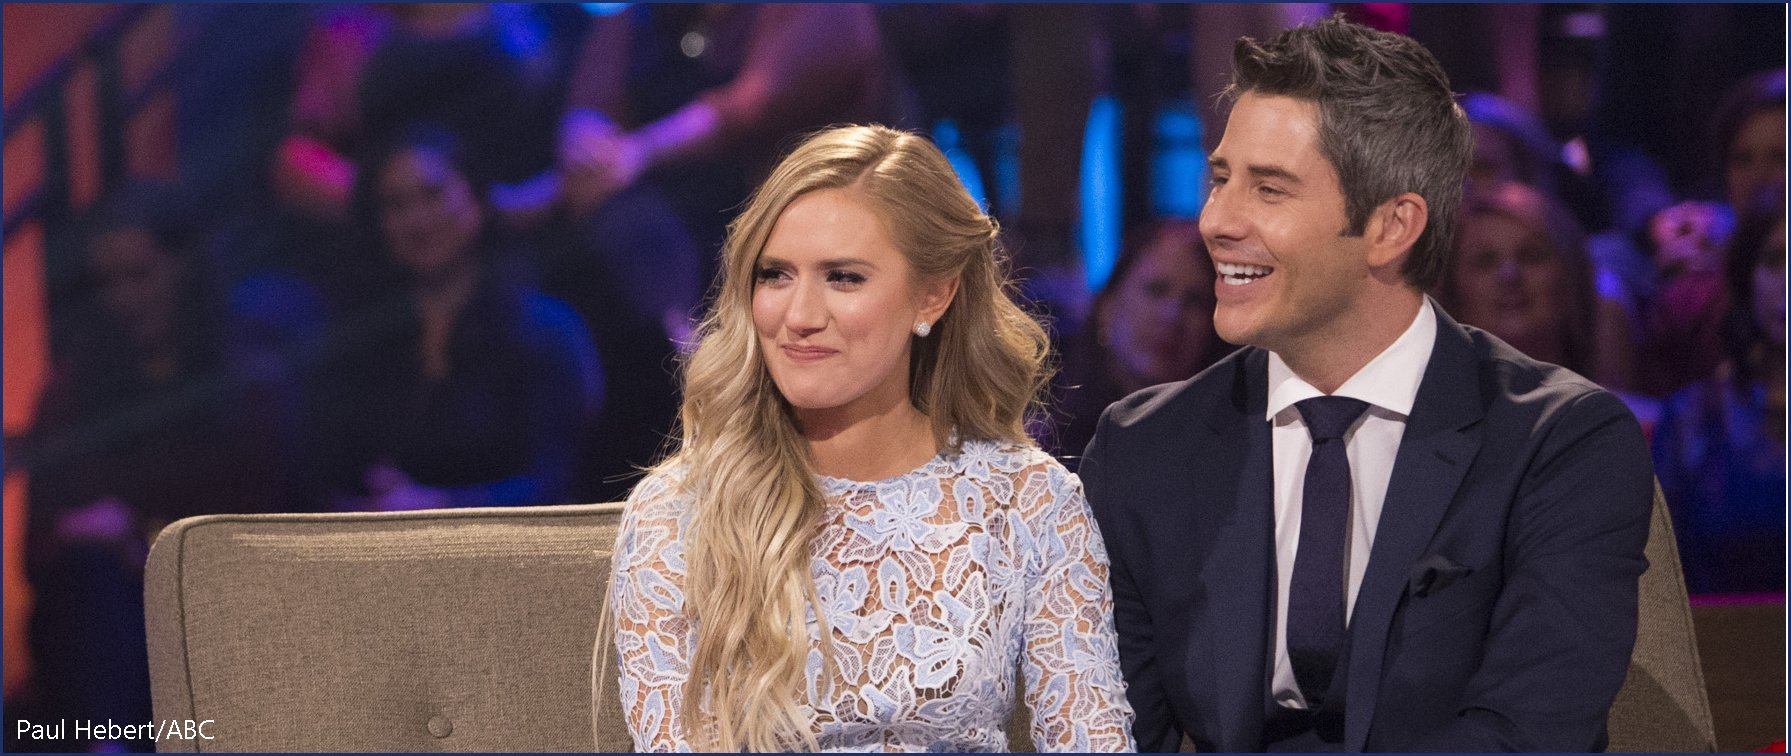 Arie Luyendyk Jr dating storia Hook up j. d. o. o